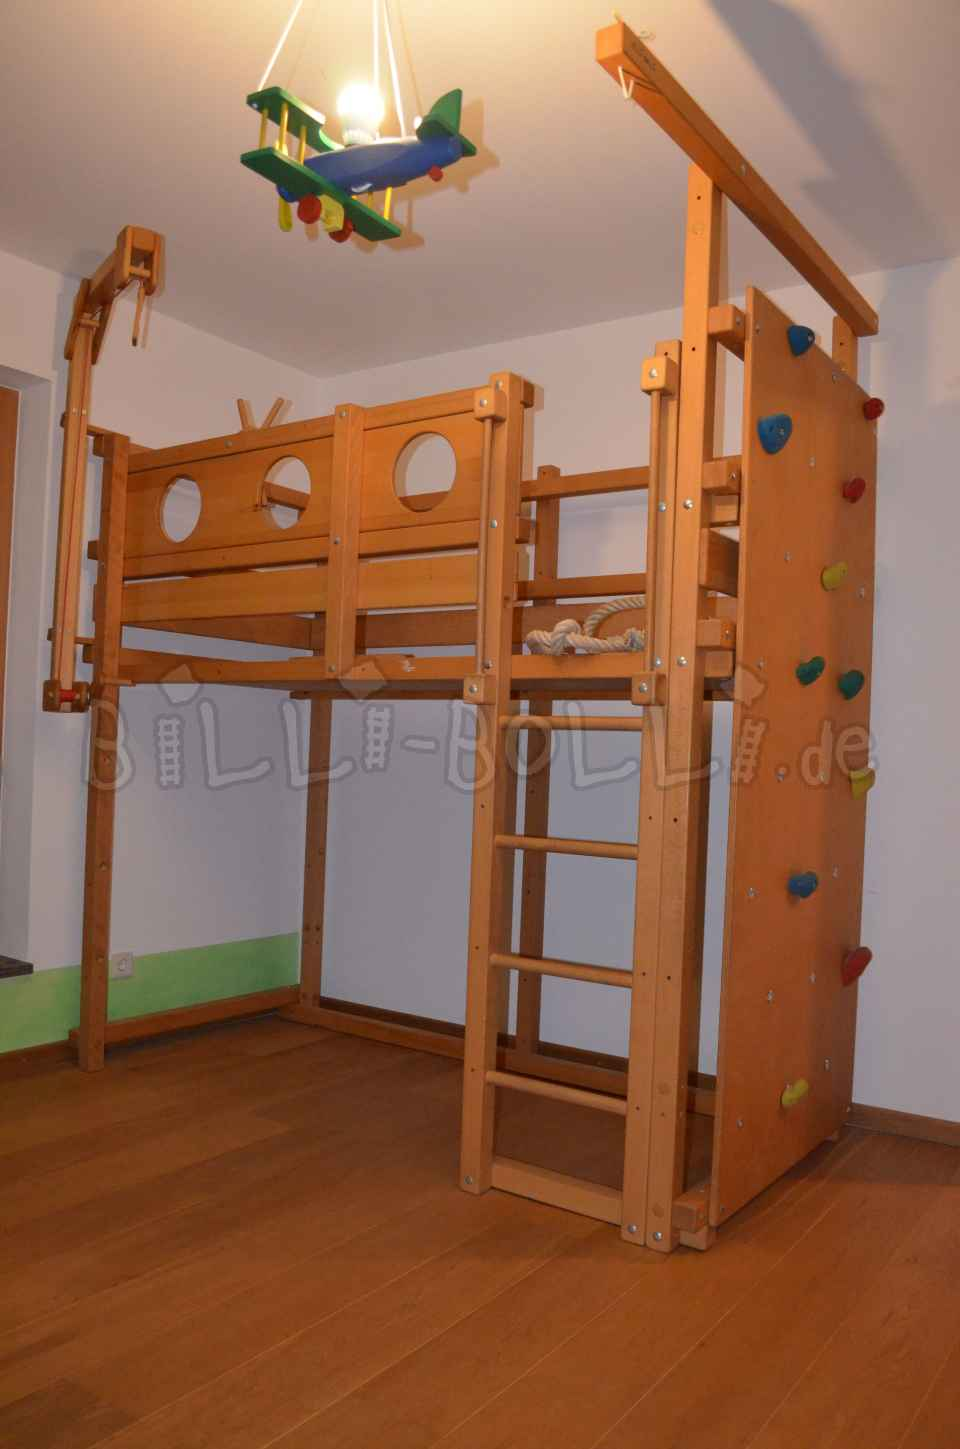 Growing bunk bed 90 x 200 cm, beech oiled/ waxed (second hand loft bed)